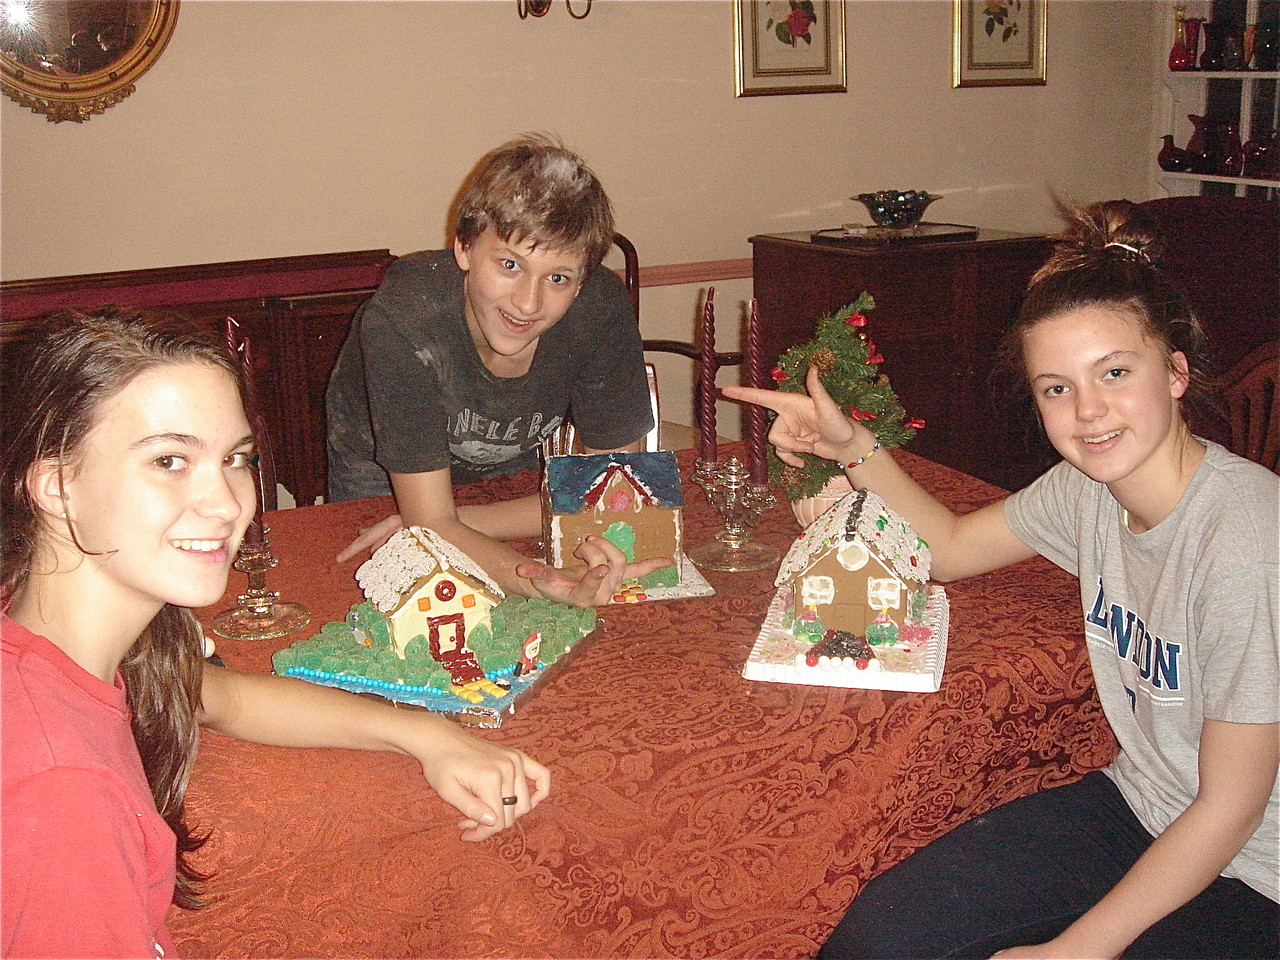 Ellie, Jack & Kate with their gingerbread houses. Ellie's is modeled after the Skaneateles lake house.